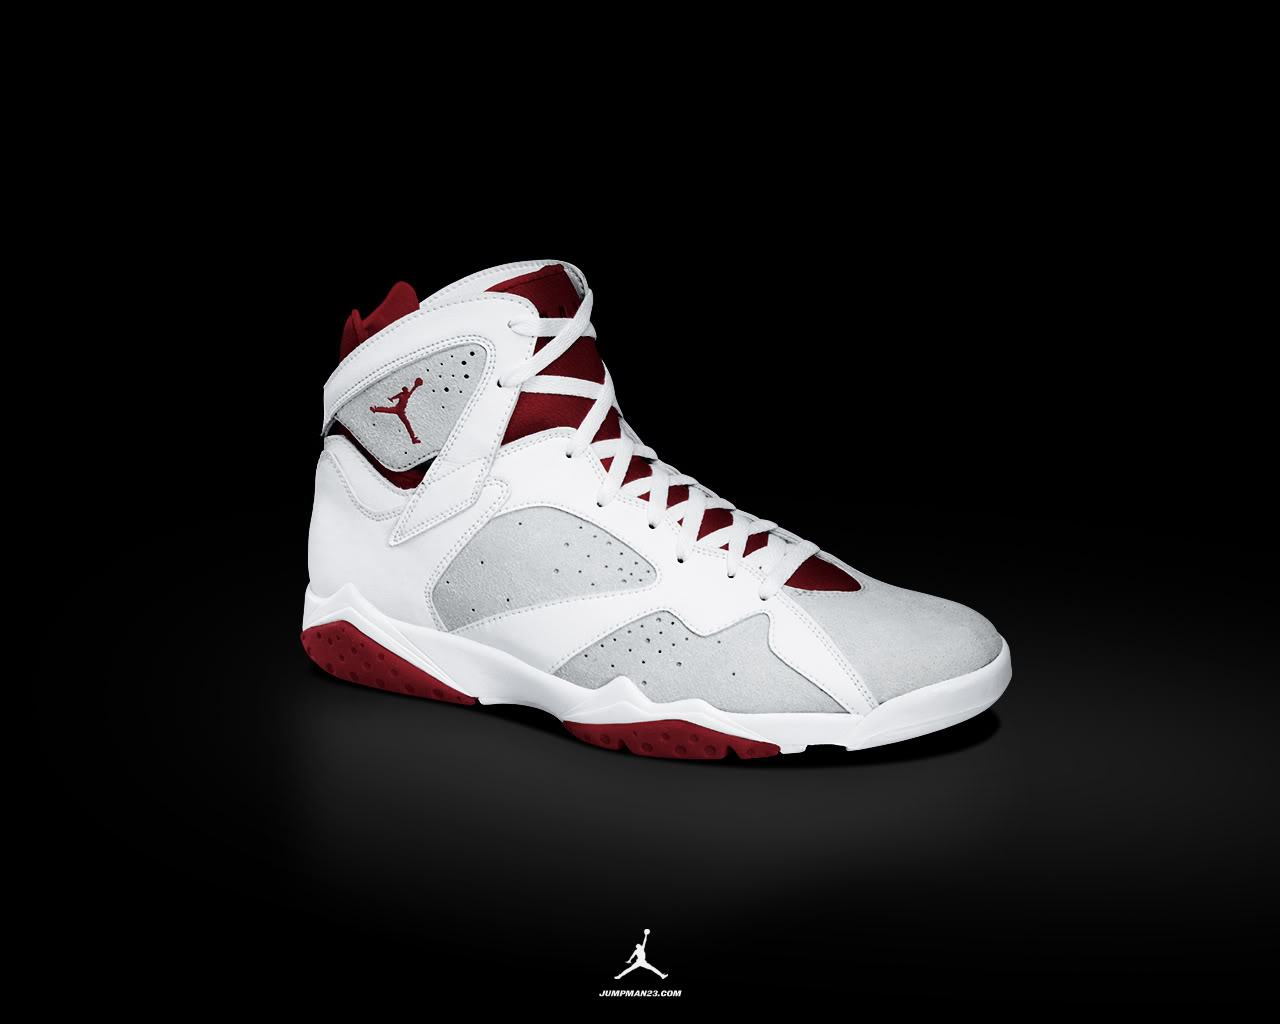 Free Jordan Shoes Wallpaper